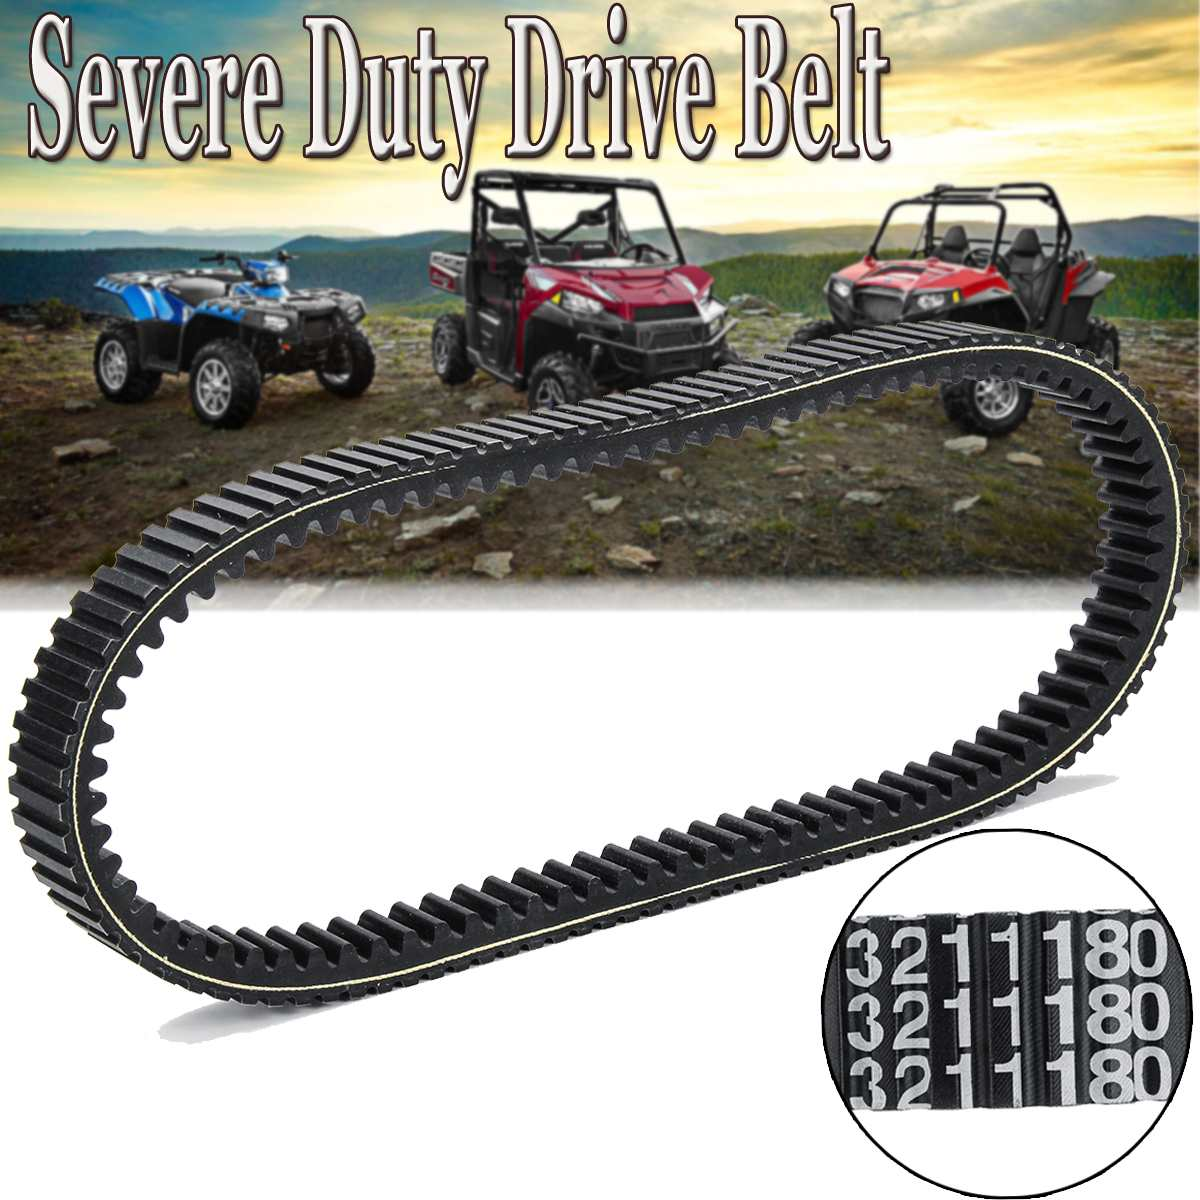 Elite Severe   Drive Belt For Polaris 2015-2017 Rzr S Xp Xp 4 1000 3211180